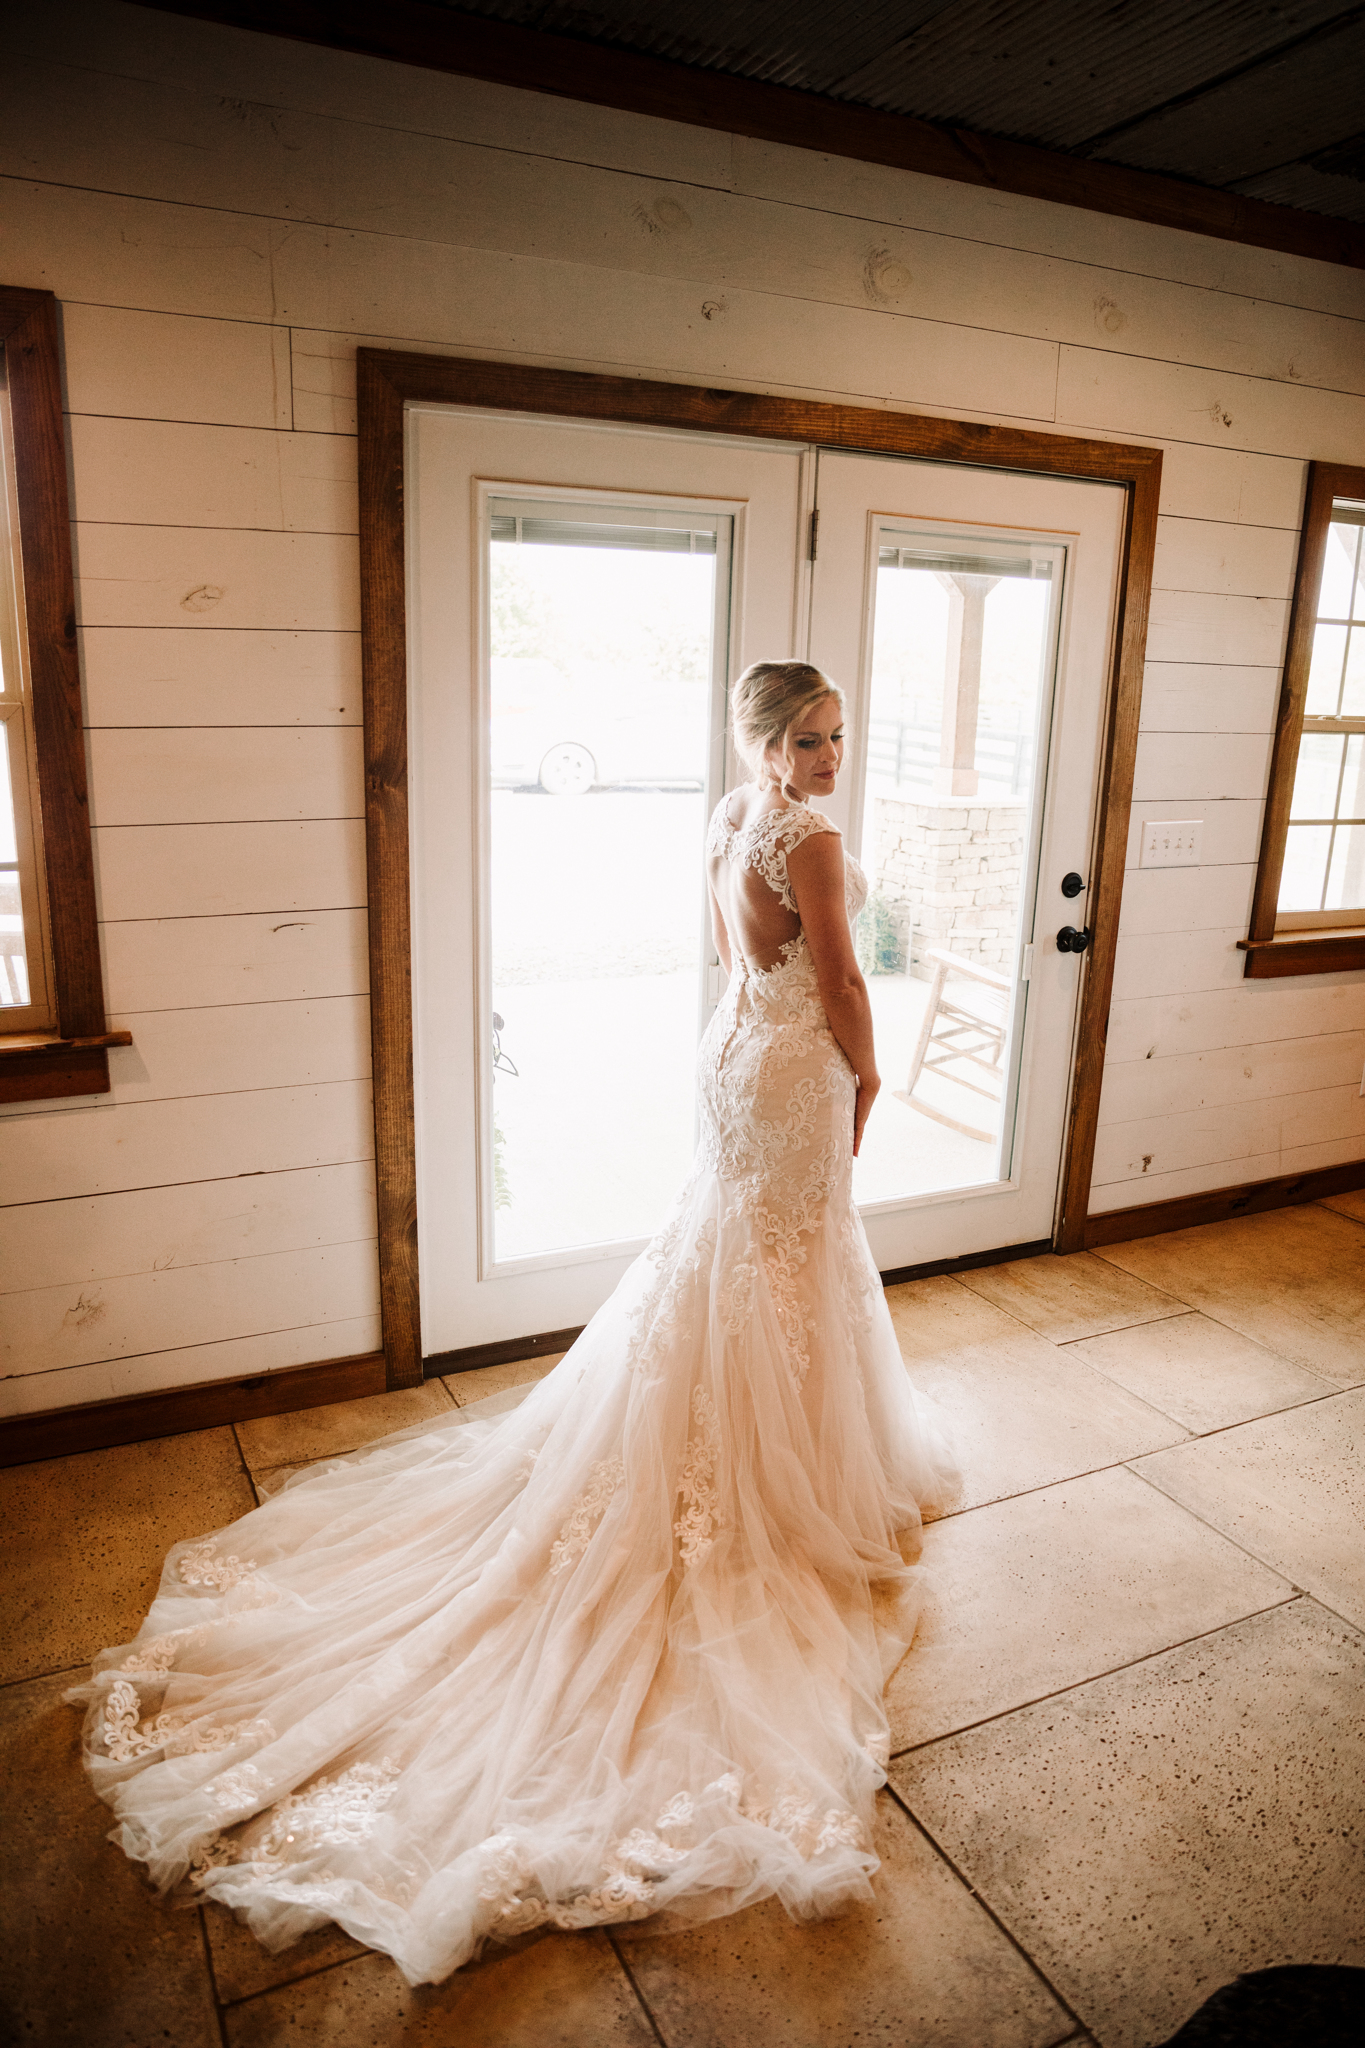 Stella York Wedding Dress: Minimalistic Barn Wedding featured on Nashville Bride Guide